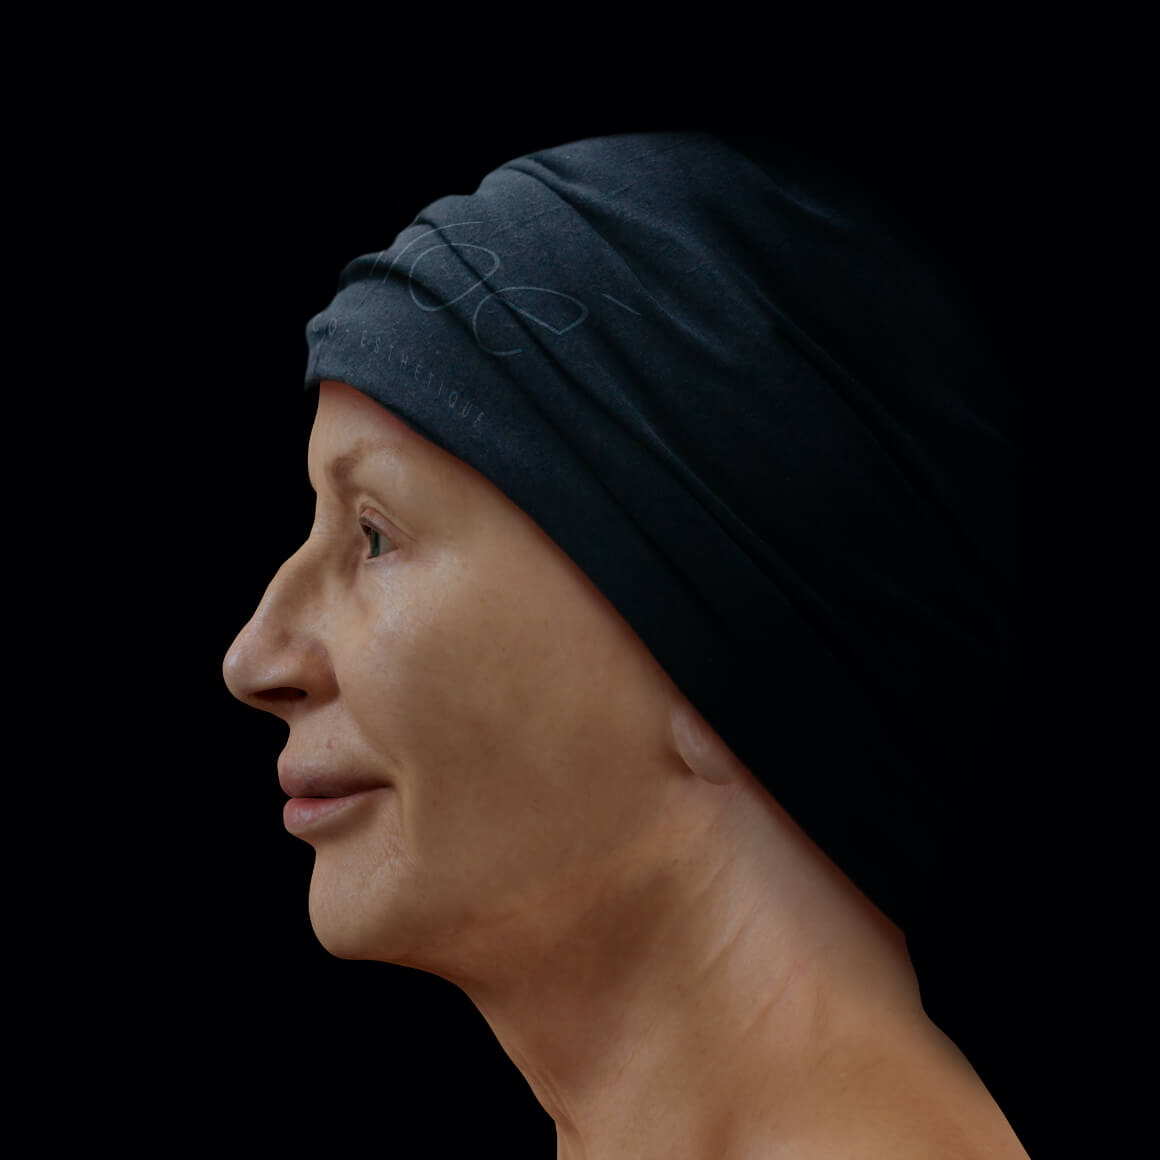 Female patient from Clinique Chloé positioned sideways after a Profound non-surgical facelift treatment